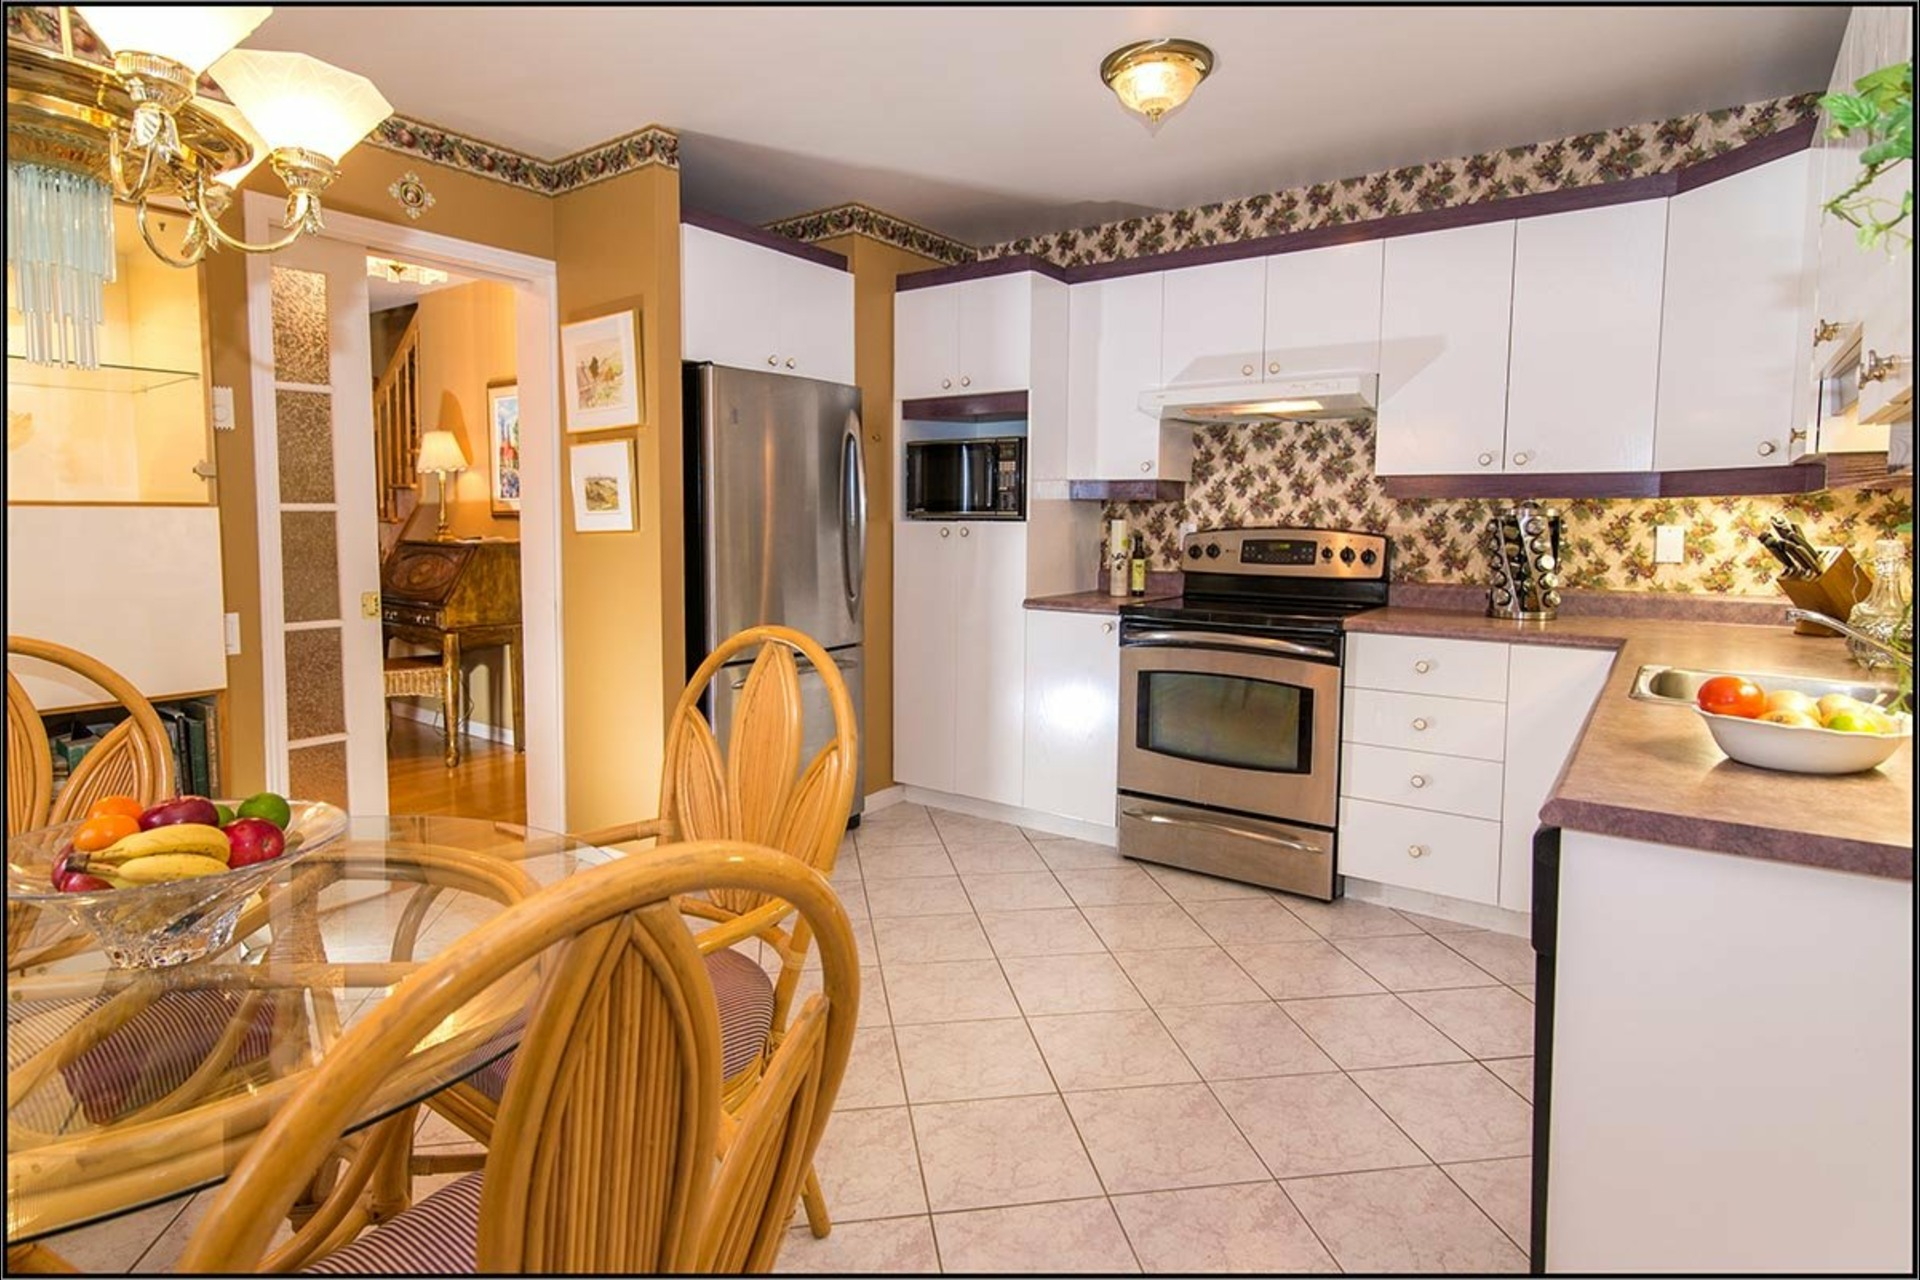 image 6 - House For sale Sainte-Foy/Sillery/Cap-Rouge Québec  - 11 rooms